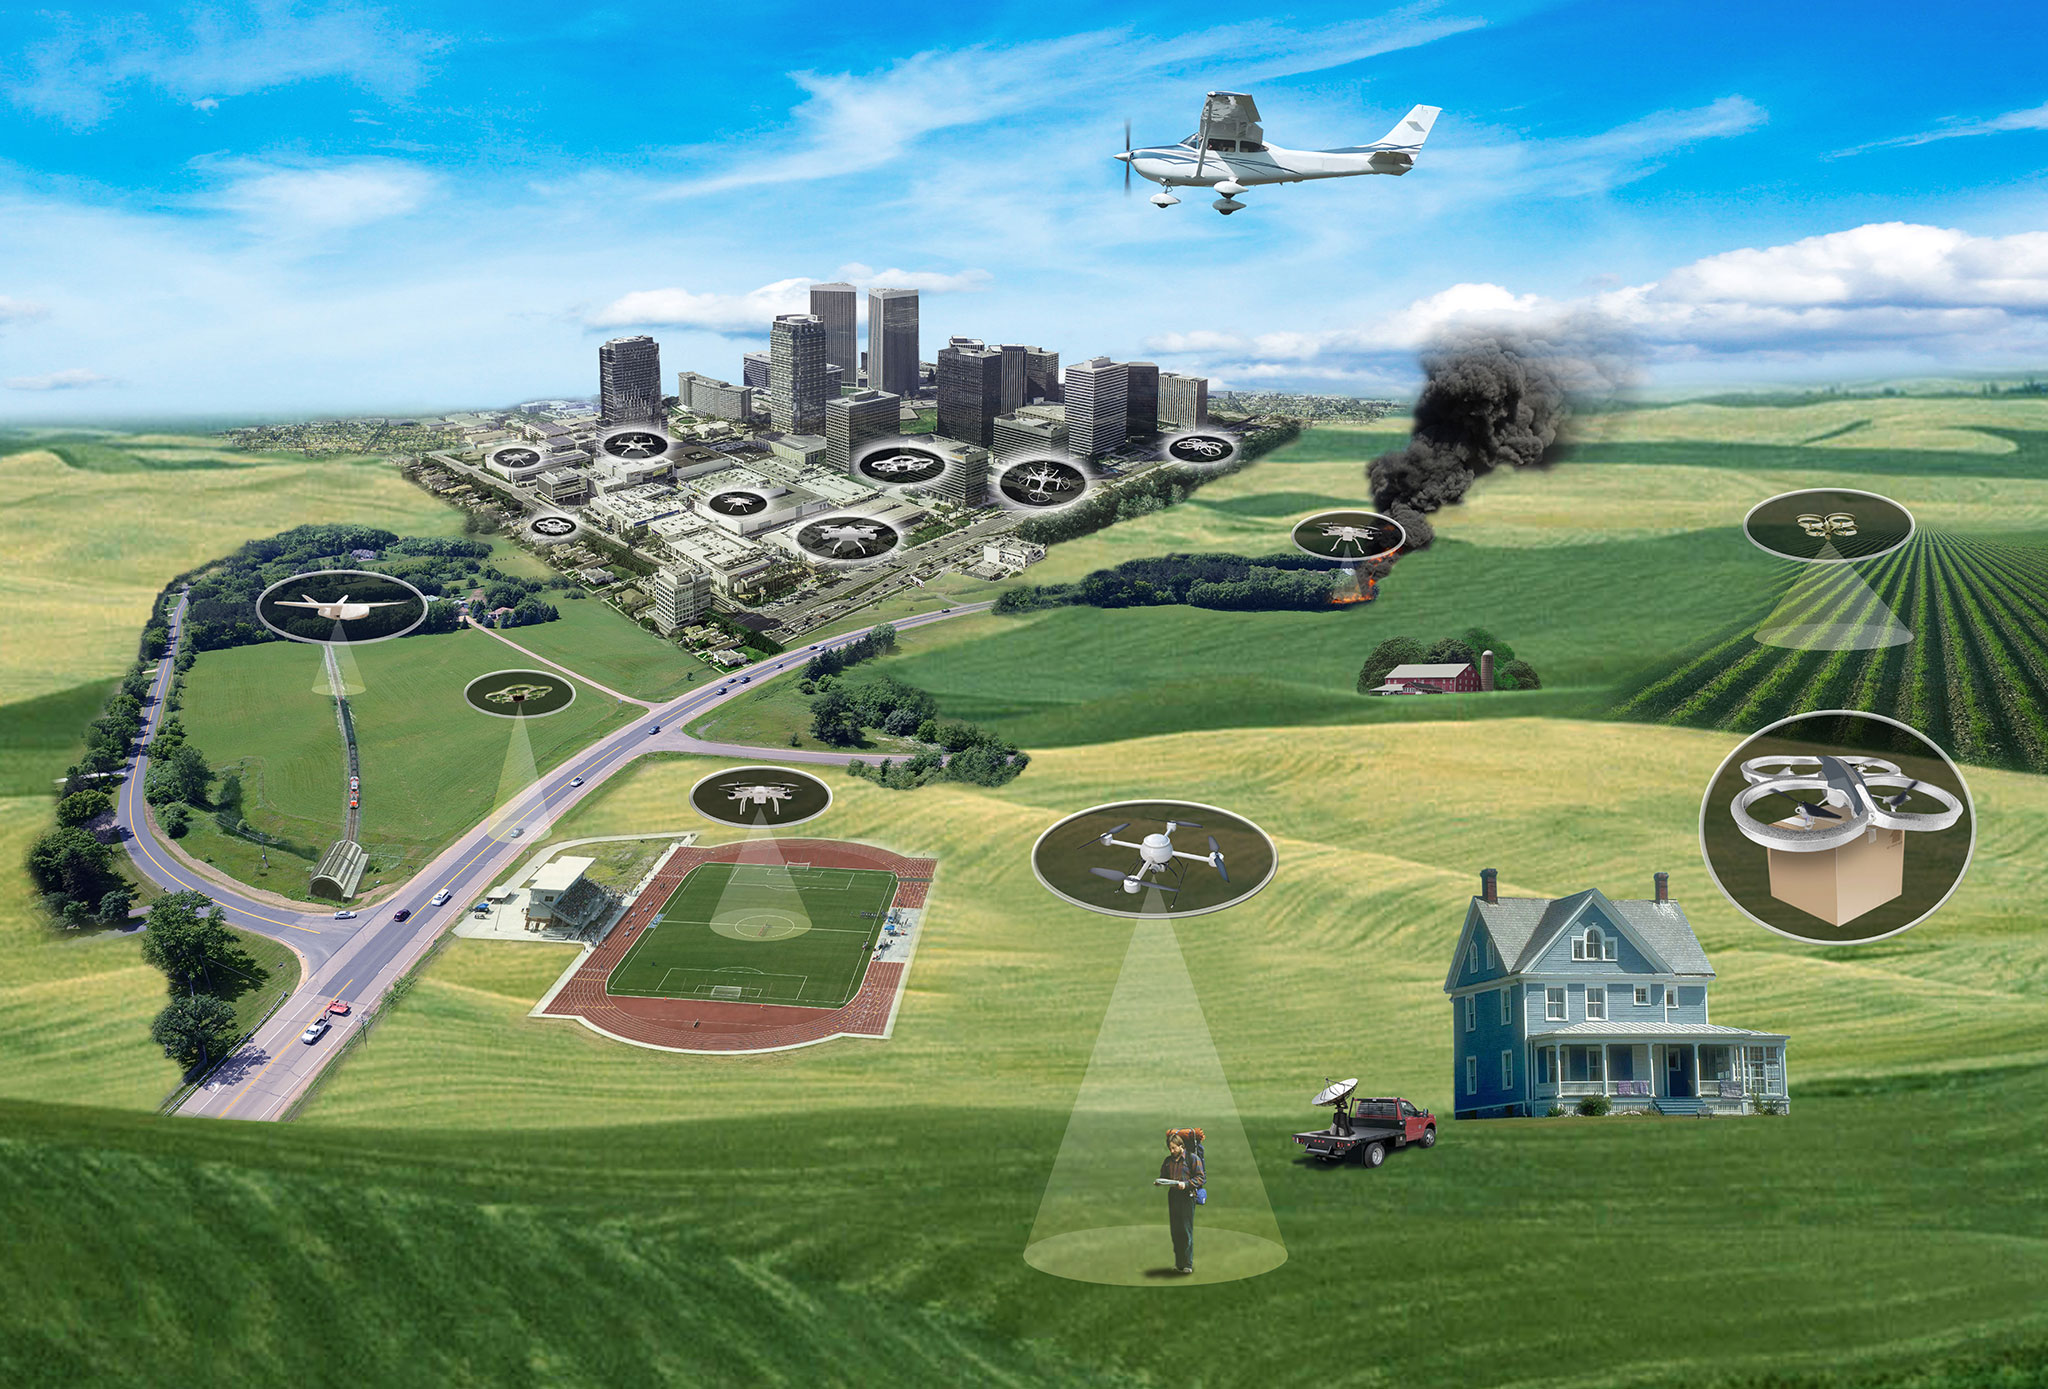 Nasa Drives Vision Of Air Traffic Management For Drones